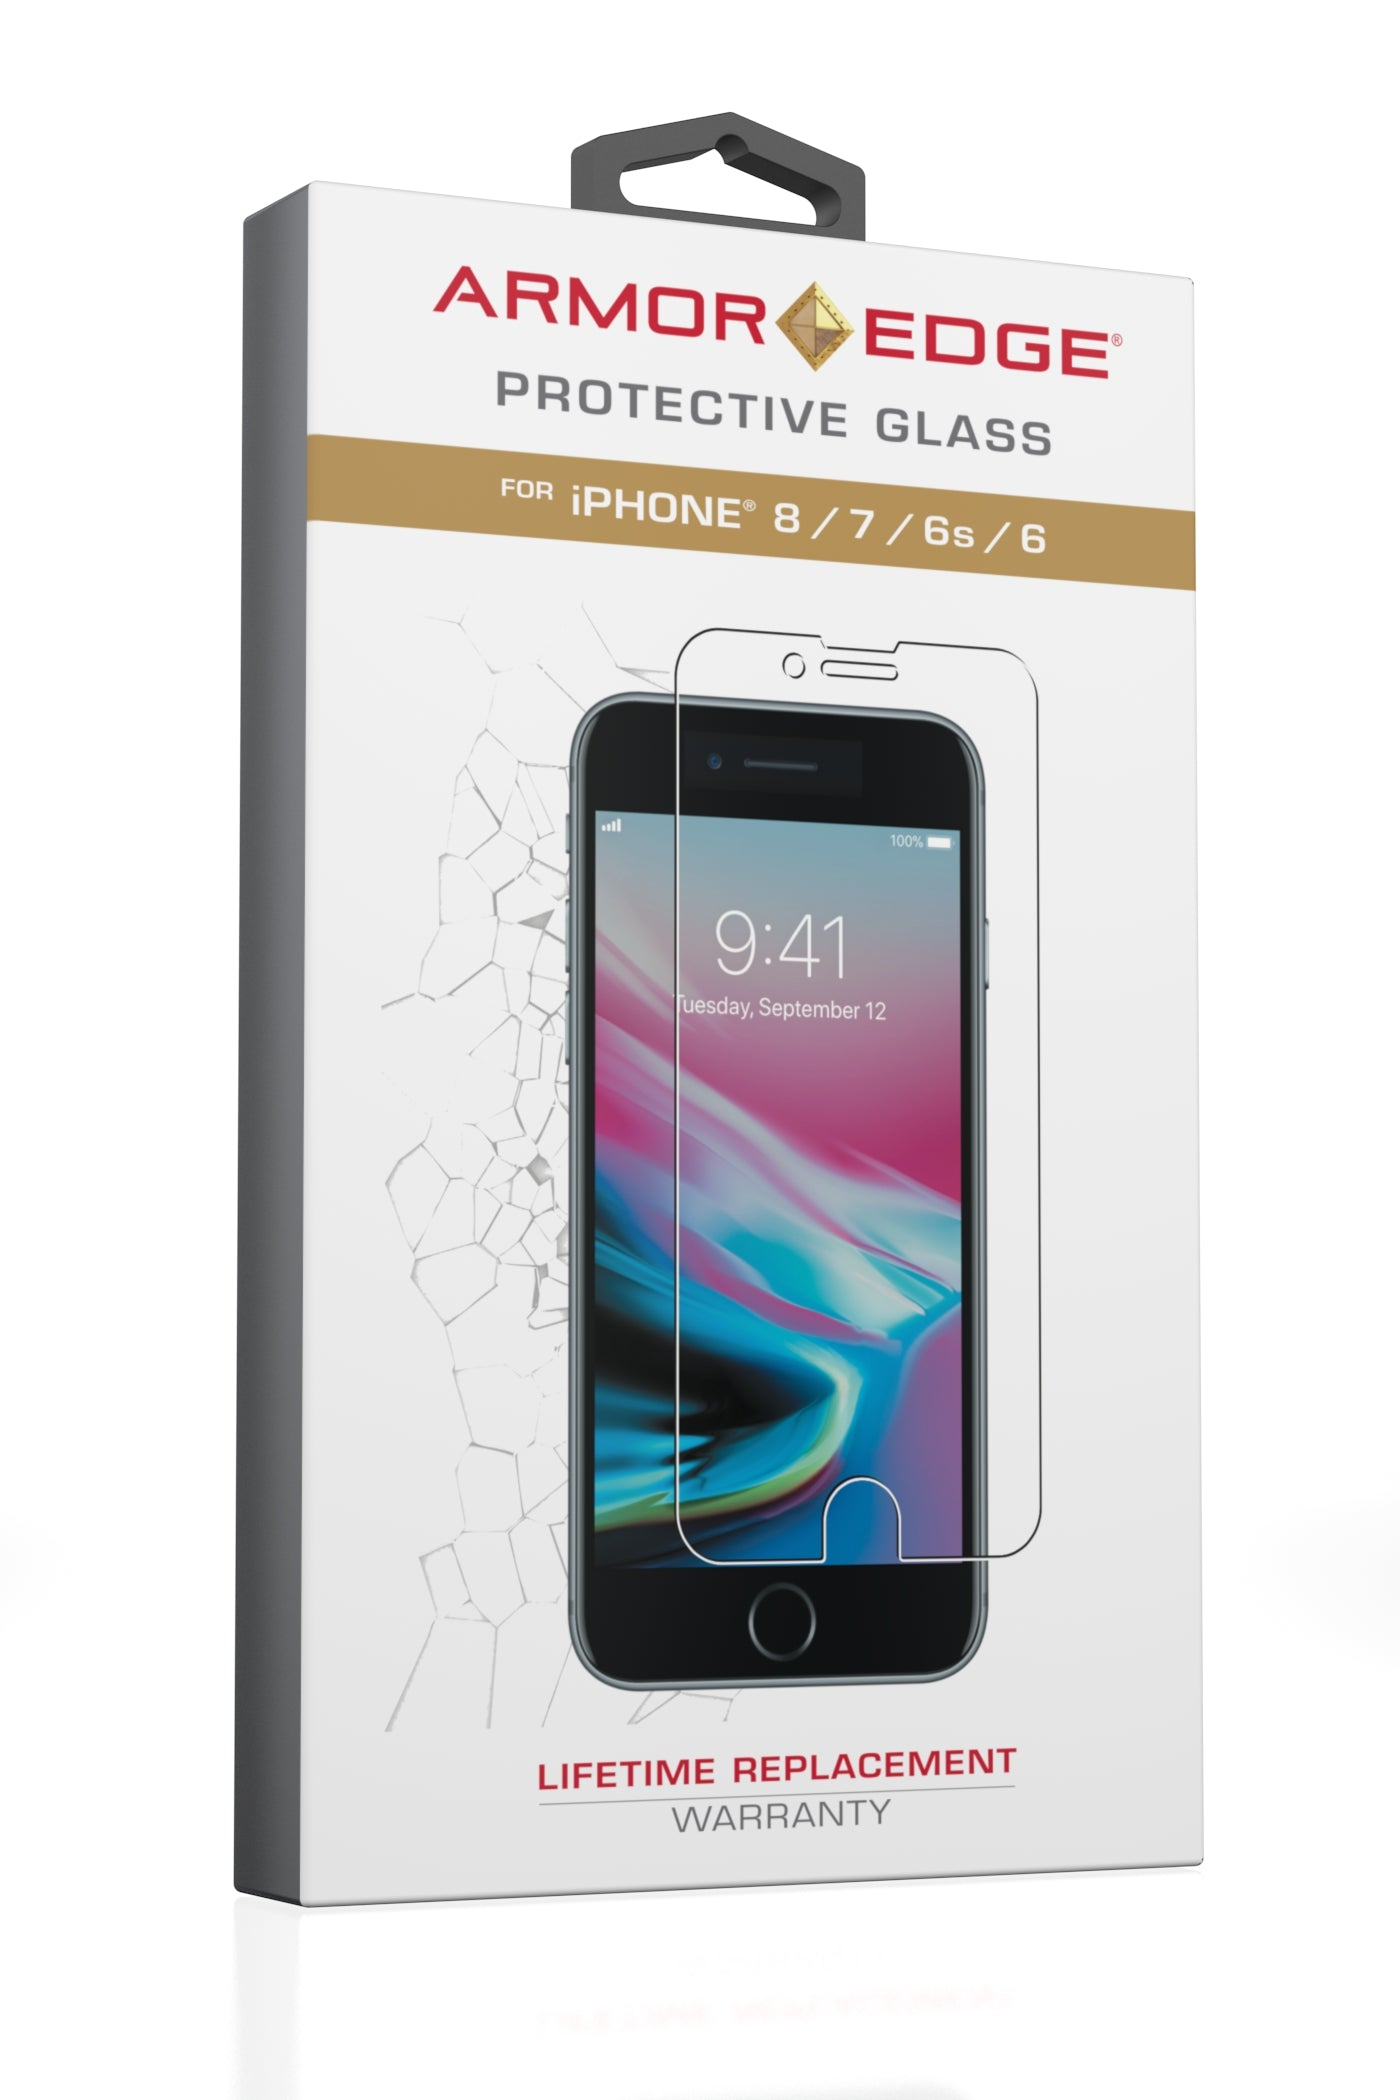 Armor Edge - Protective Glass for iPhone 6 / 6S / 7 / 8